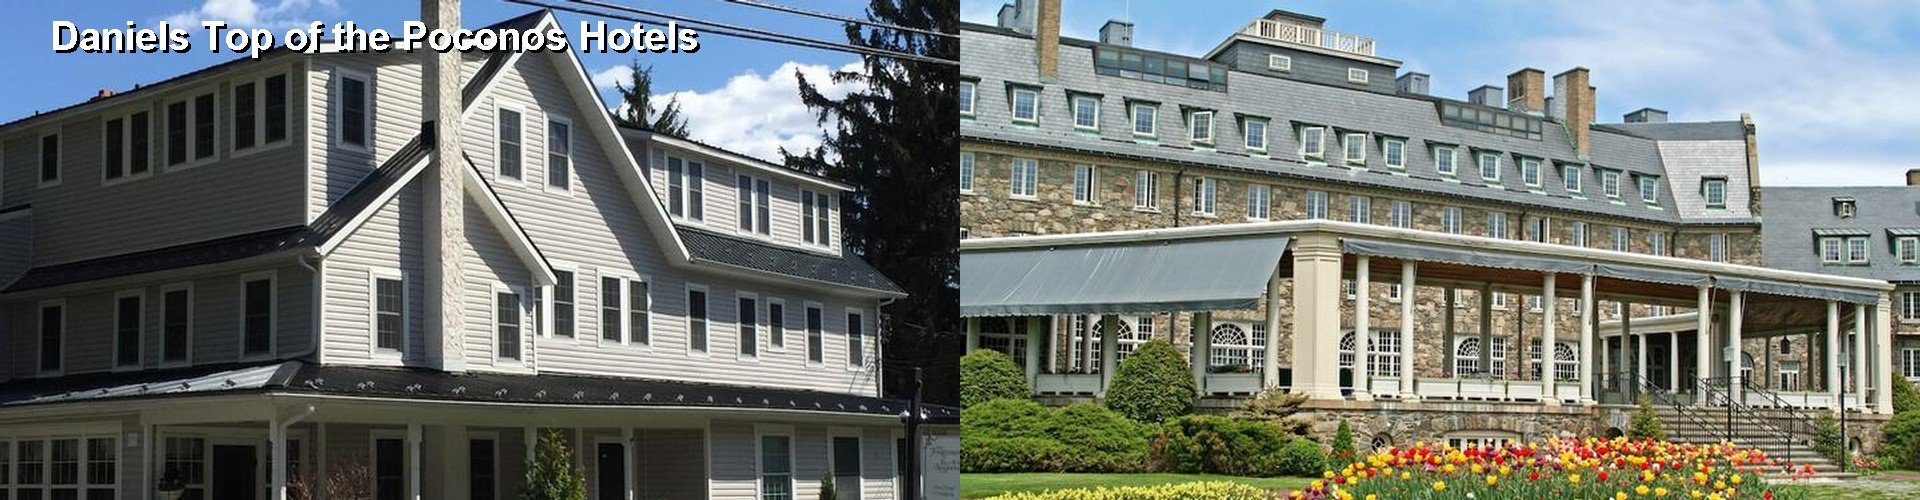 5 Best Hotels near Daniels Top of the Poconos